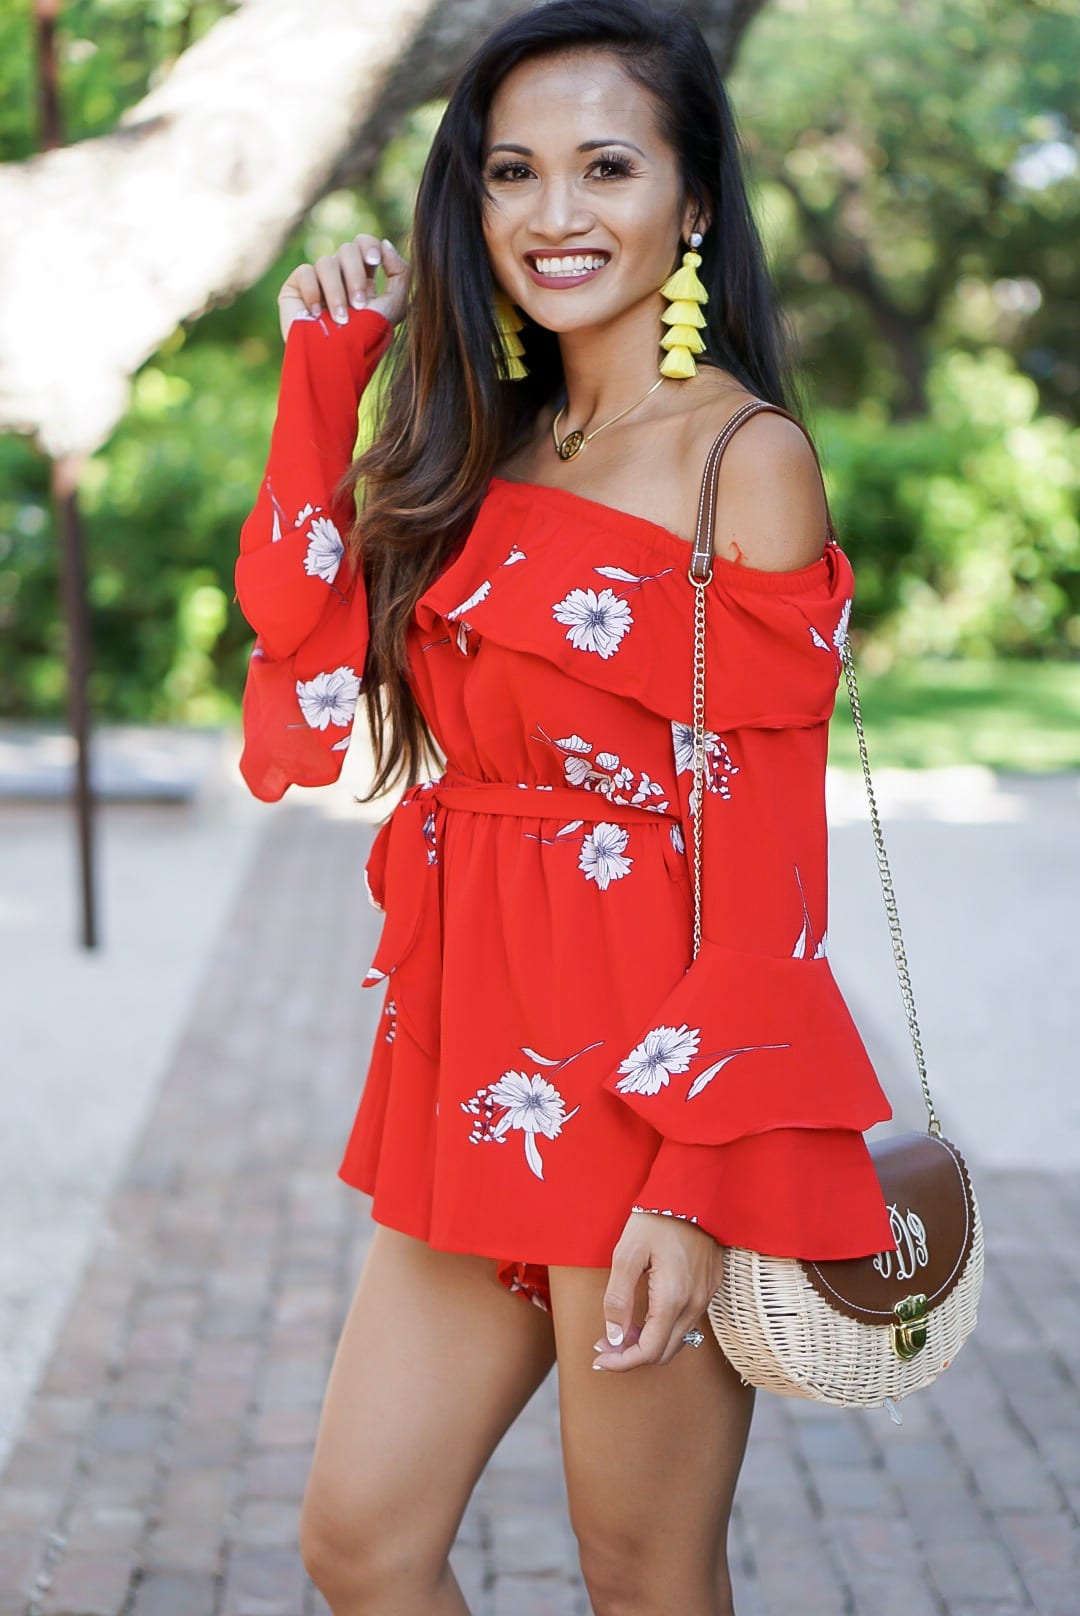 red romper, red floral romper, #summerstyle, #summeroutfit, #chicwish, #romper, off the shoulder, networking, tips on networking, liketoknow.it, yellow tassel earrings, lace up sandals